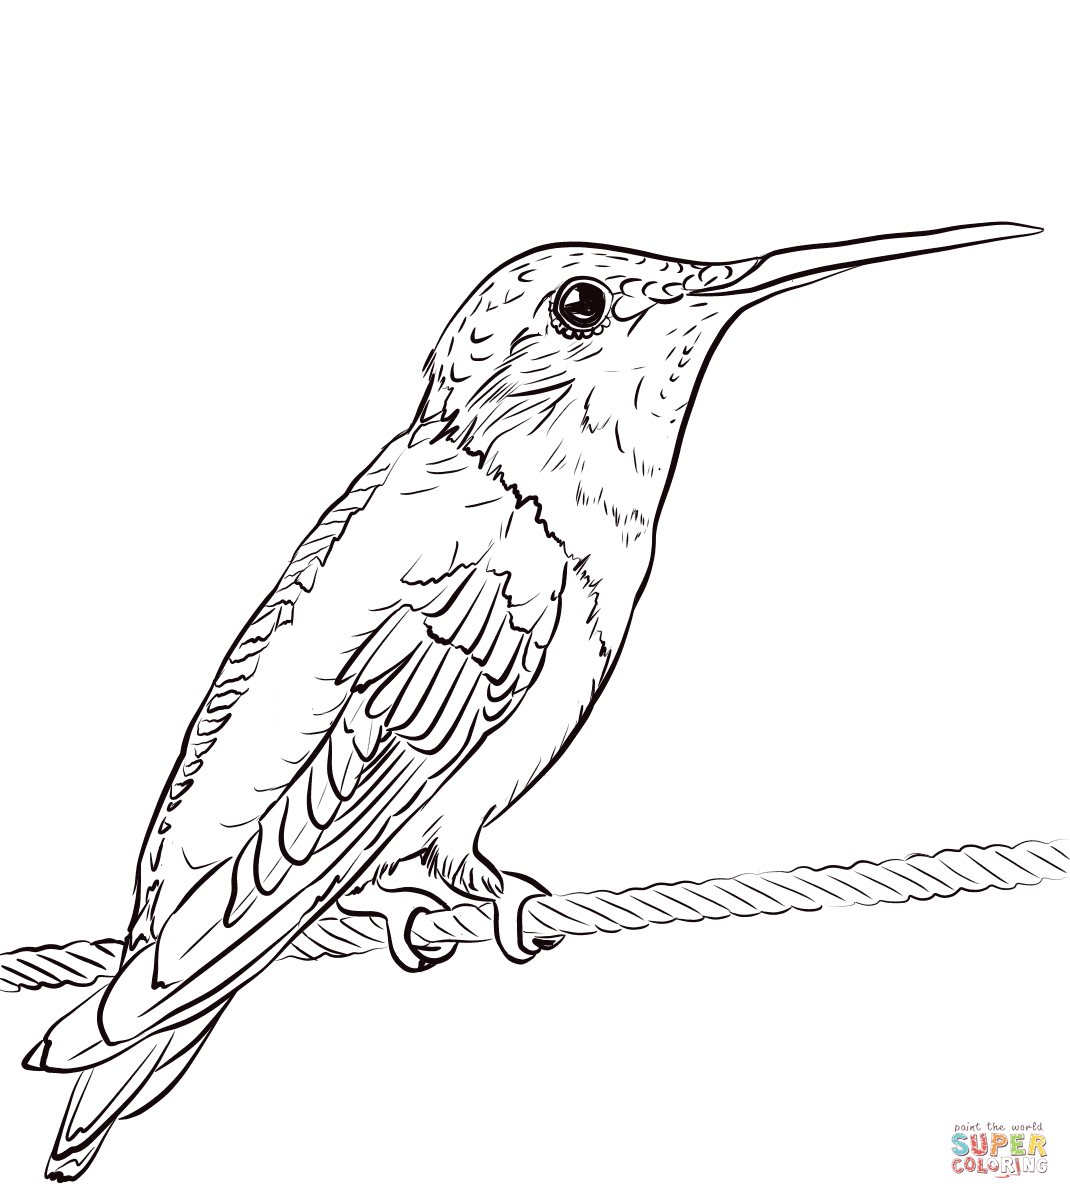 Ruby-Throated Hummingbird Coloring Page | Free Printable Coloring Pages - Free Printable Pictures Of Hummingbirds